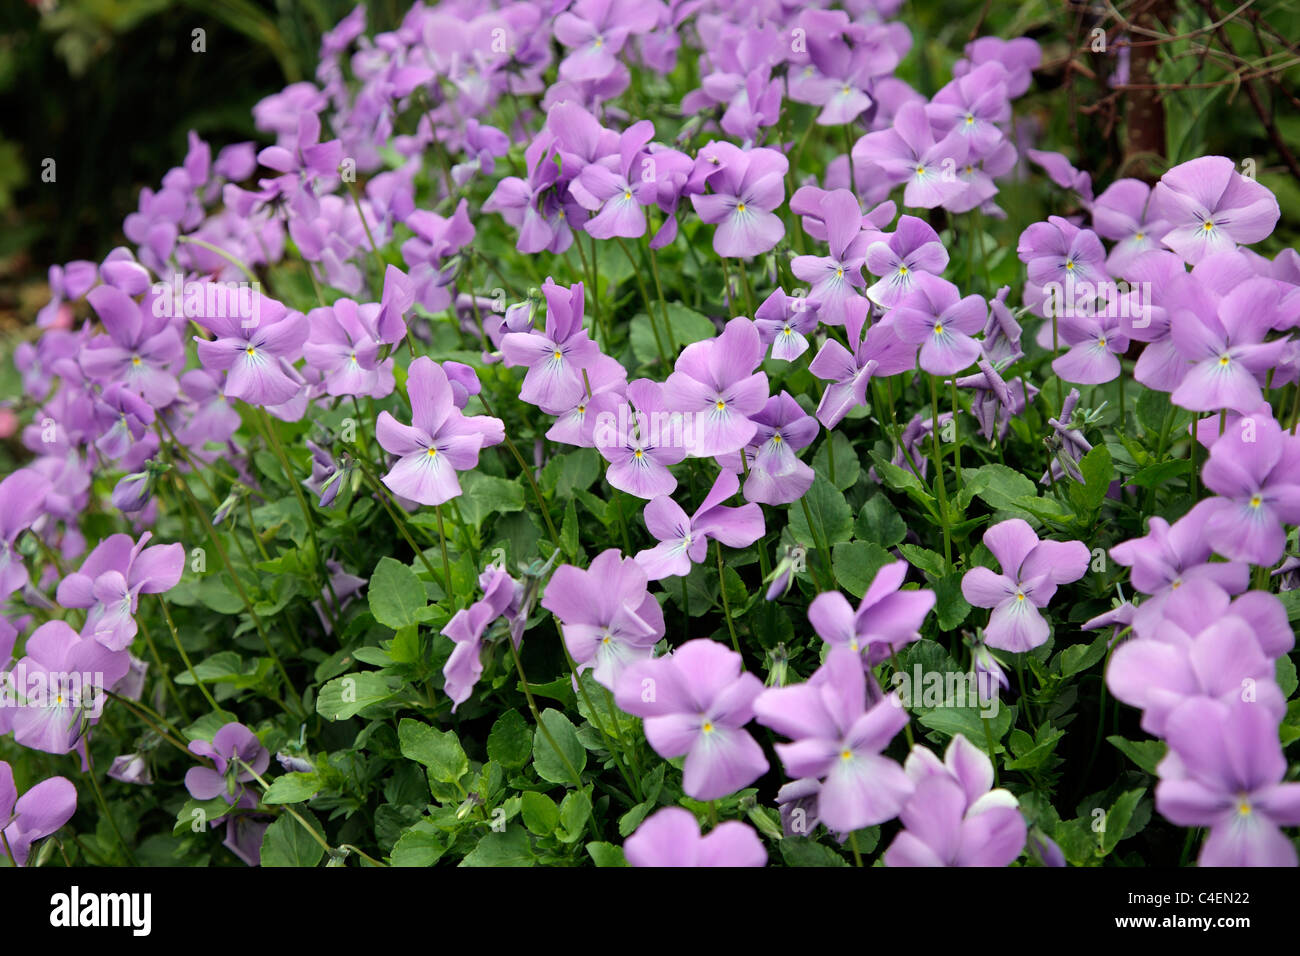 Viola 'Eastgrove Blue Scented' - Stock Image